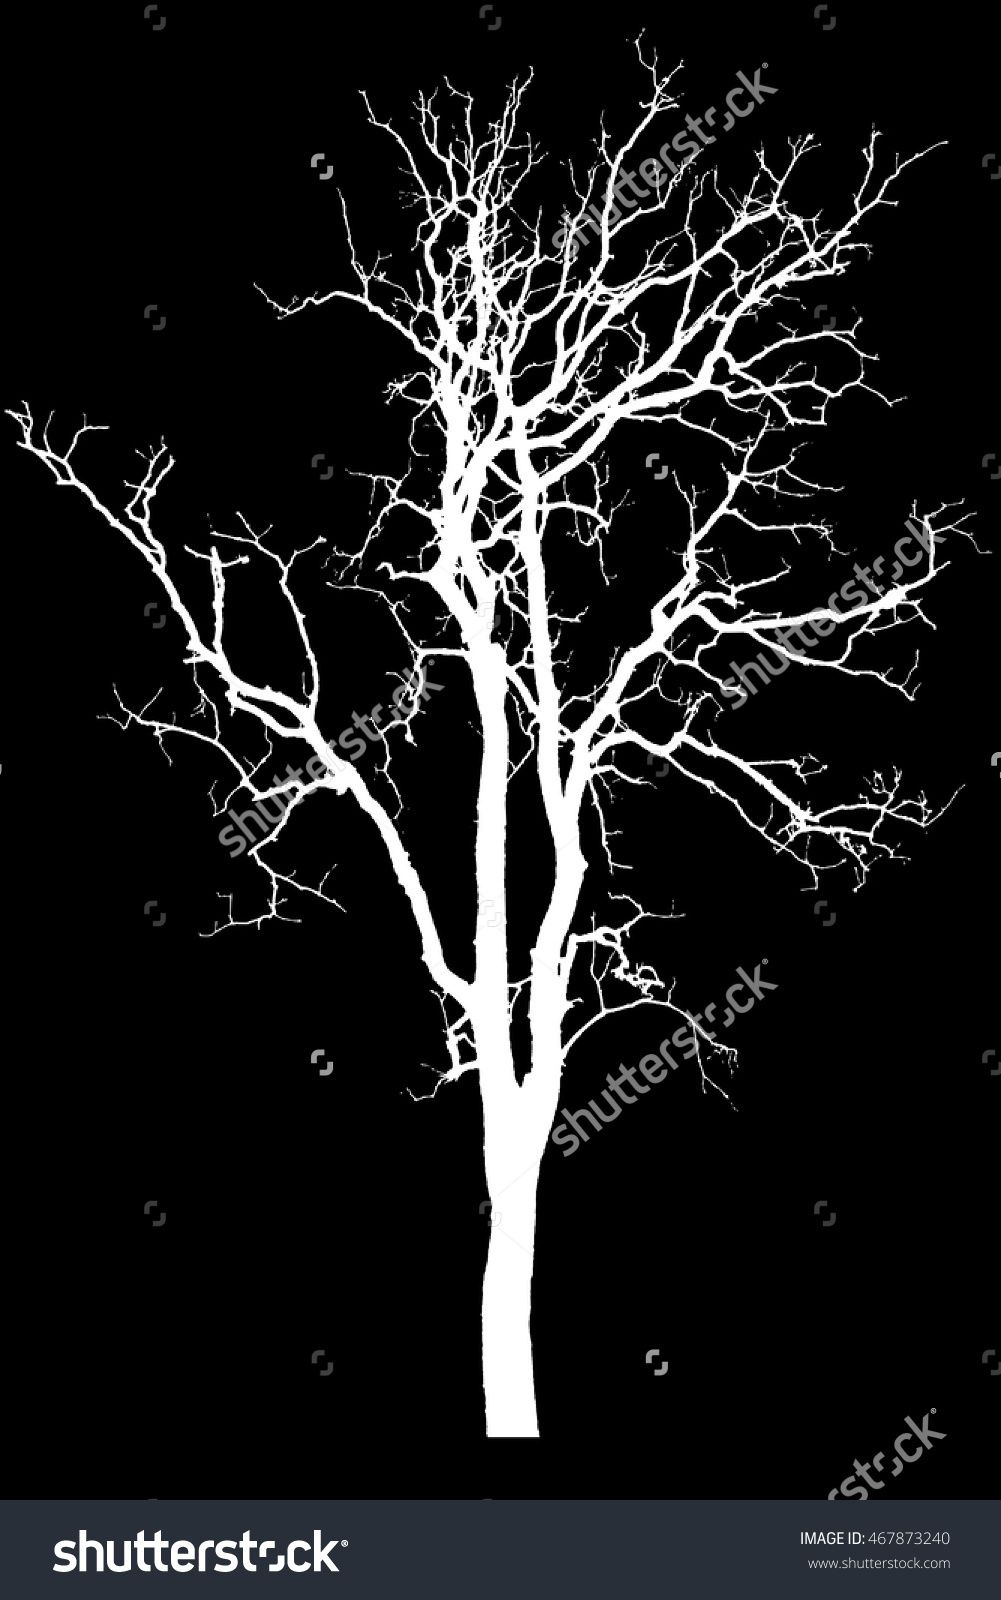 Silhouette Tree Isolated On Black Background With Clipping